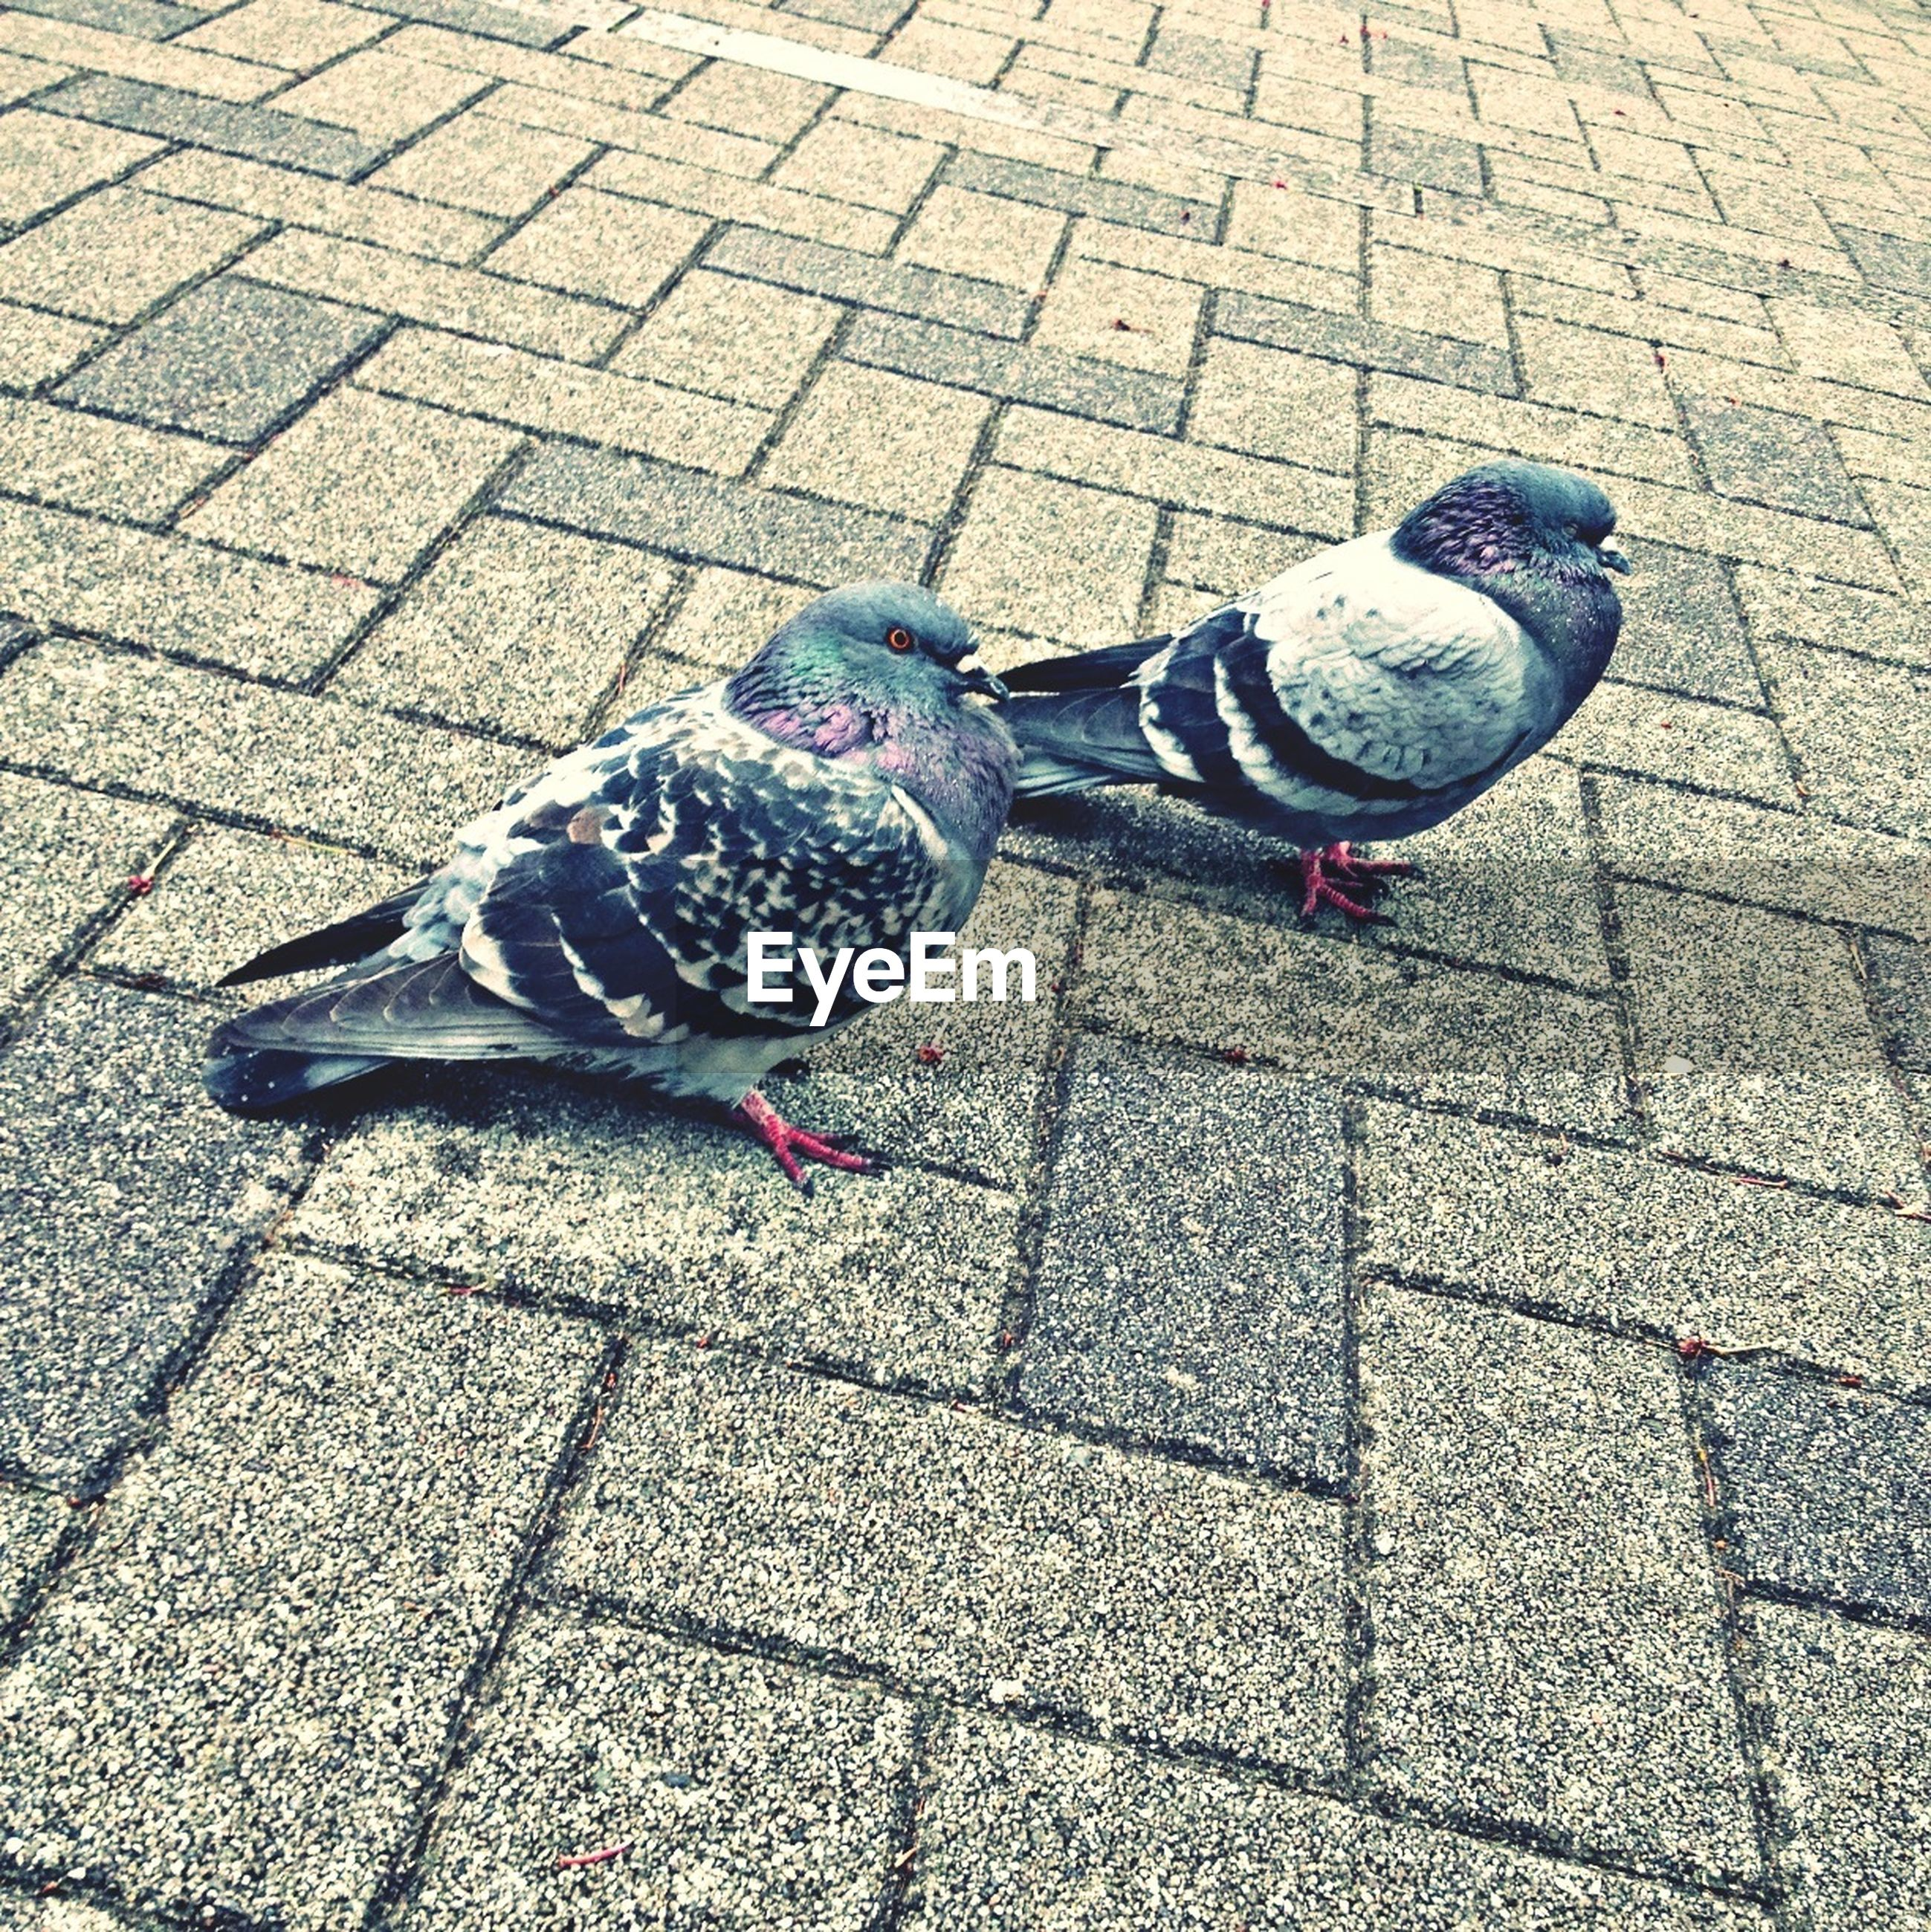 animal themes, bird, animals in the wild, one animal, pigeon, wildlife, street, high angle view, cobblestone, full length, paving stone, sidewalk, perching, outdoors, footpath, day, two animals, pavement, no people, peacock